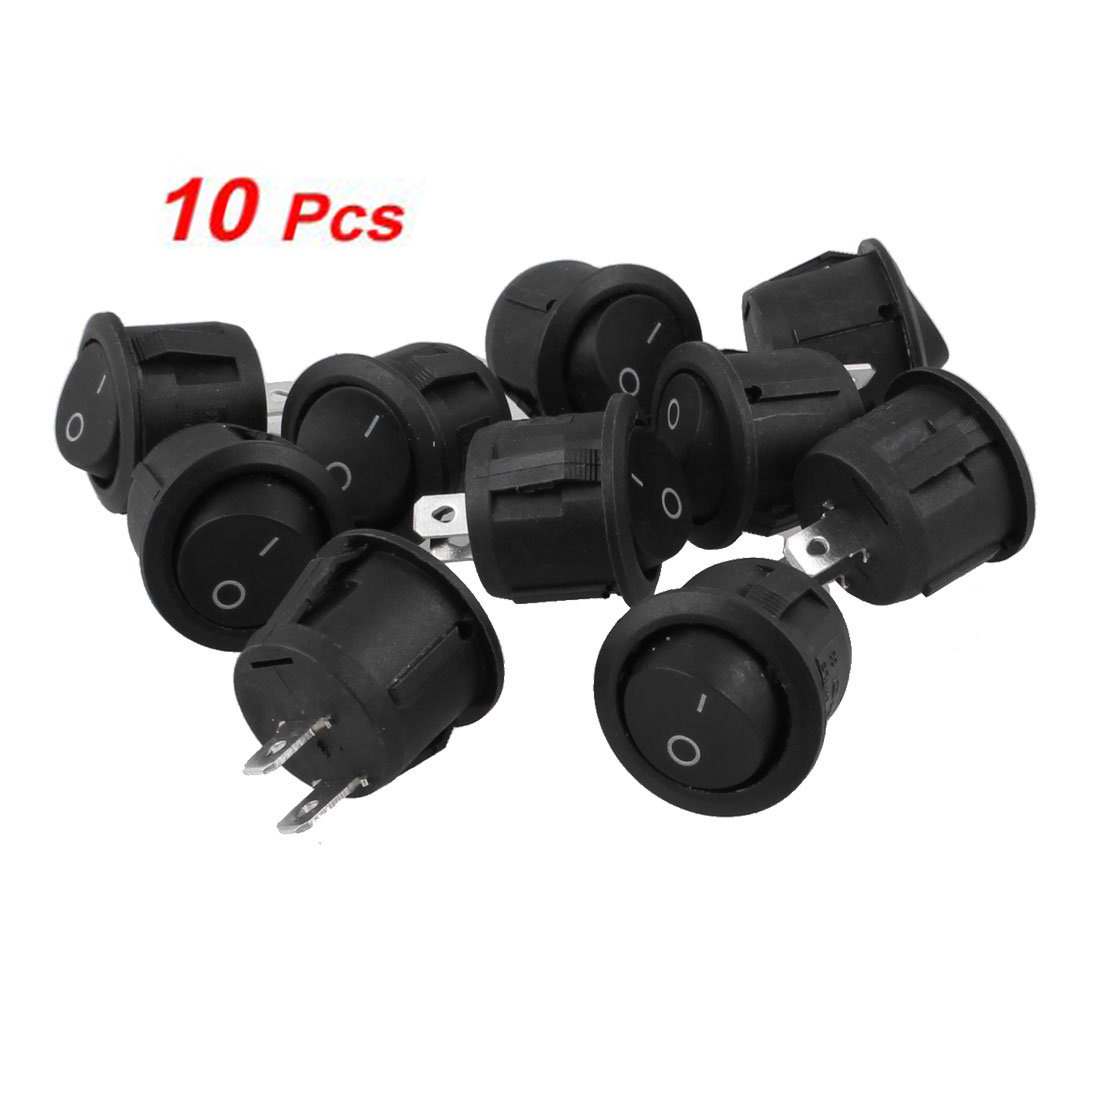 Promotion! 10Pcs AC 6A 10A 250V On Off Snap in SPST Round Boat Rocker Switch Black 5pcs lot 15 21mm 2pin spst on off g133 boat rocker switch 6a 250v 10a 125v car dash dashboard truck rv atv home